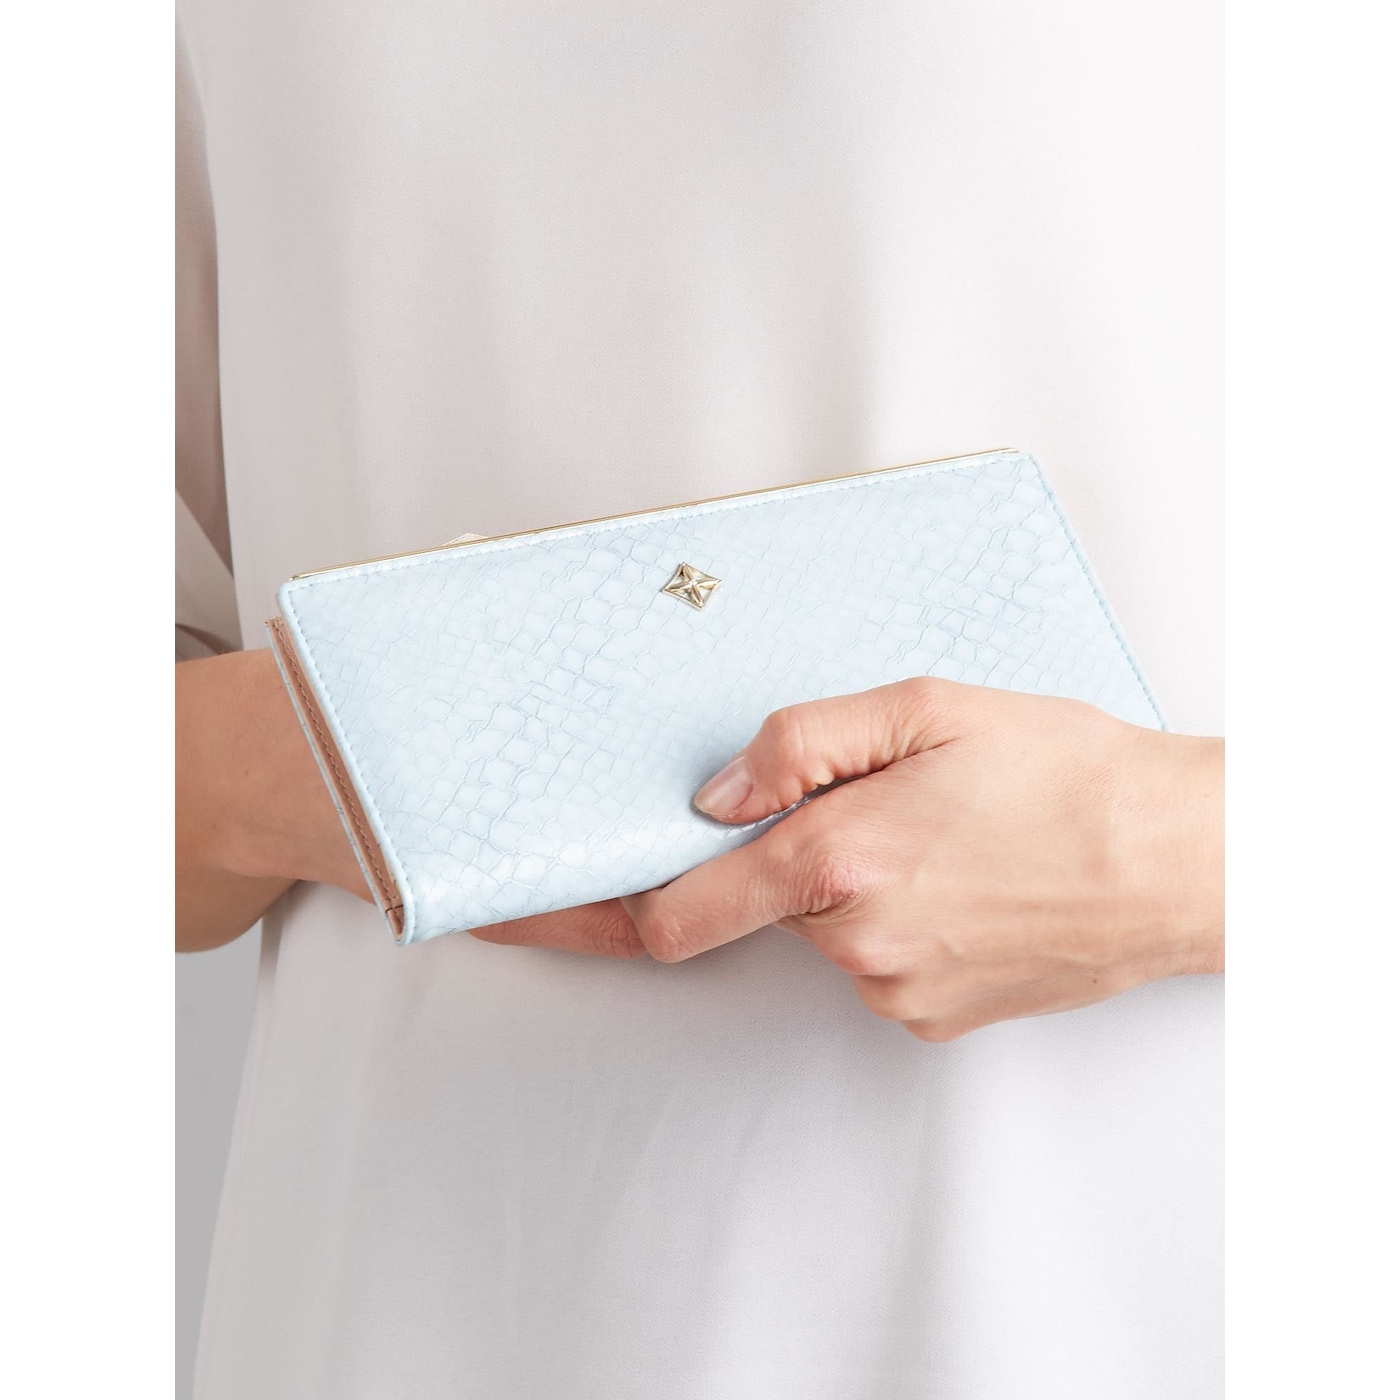 Wallet with a subtle blue pattern